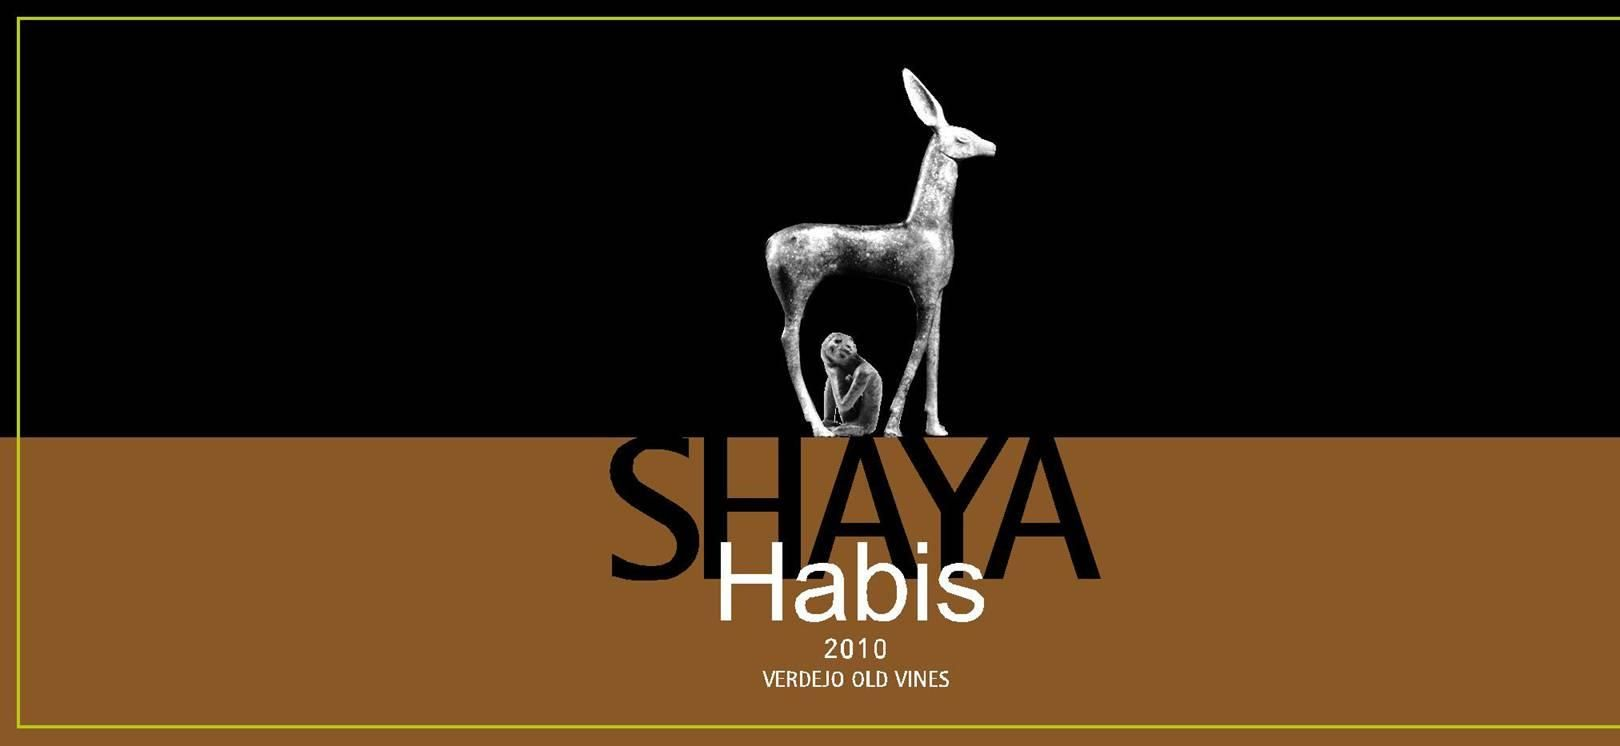 Shaya Habis Old Vines Verdejo 2010 Front Label